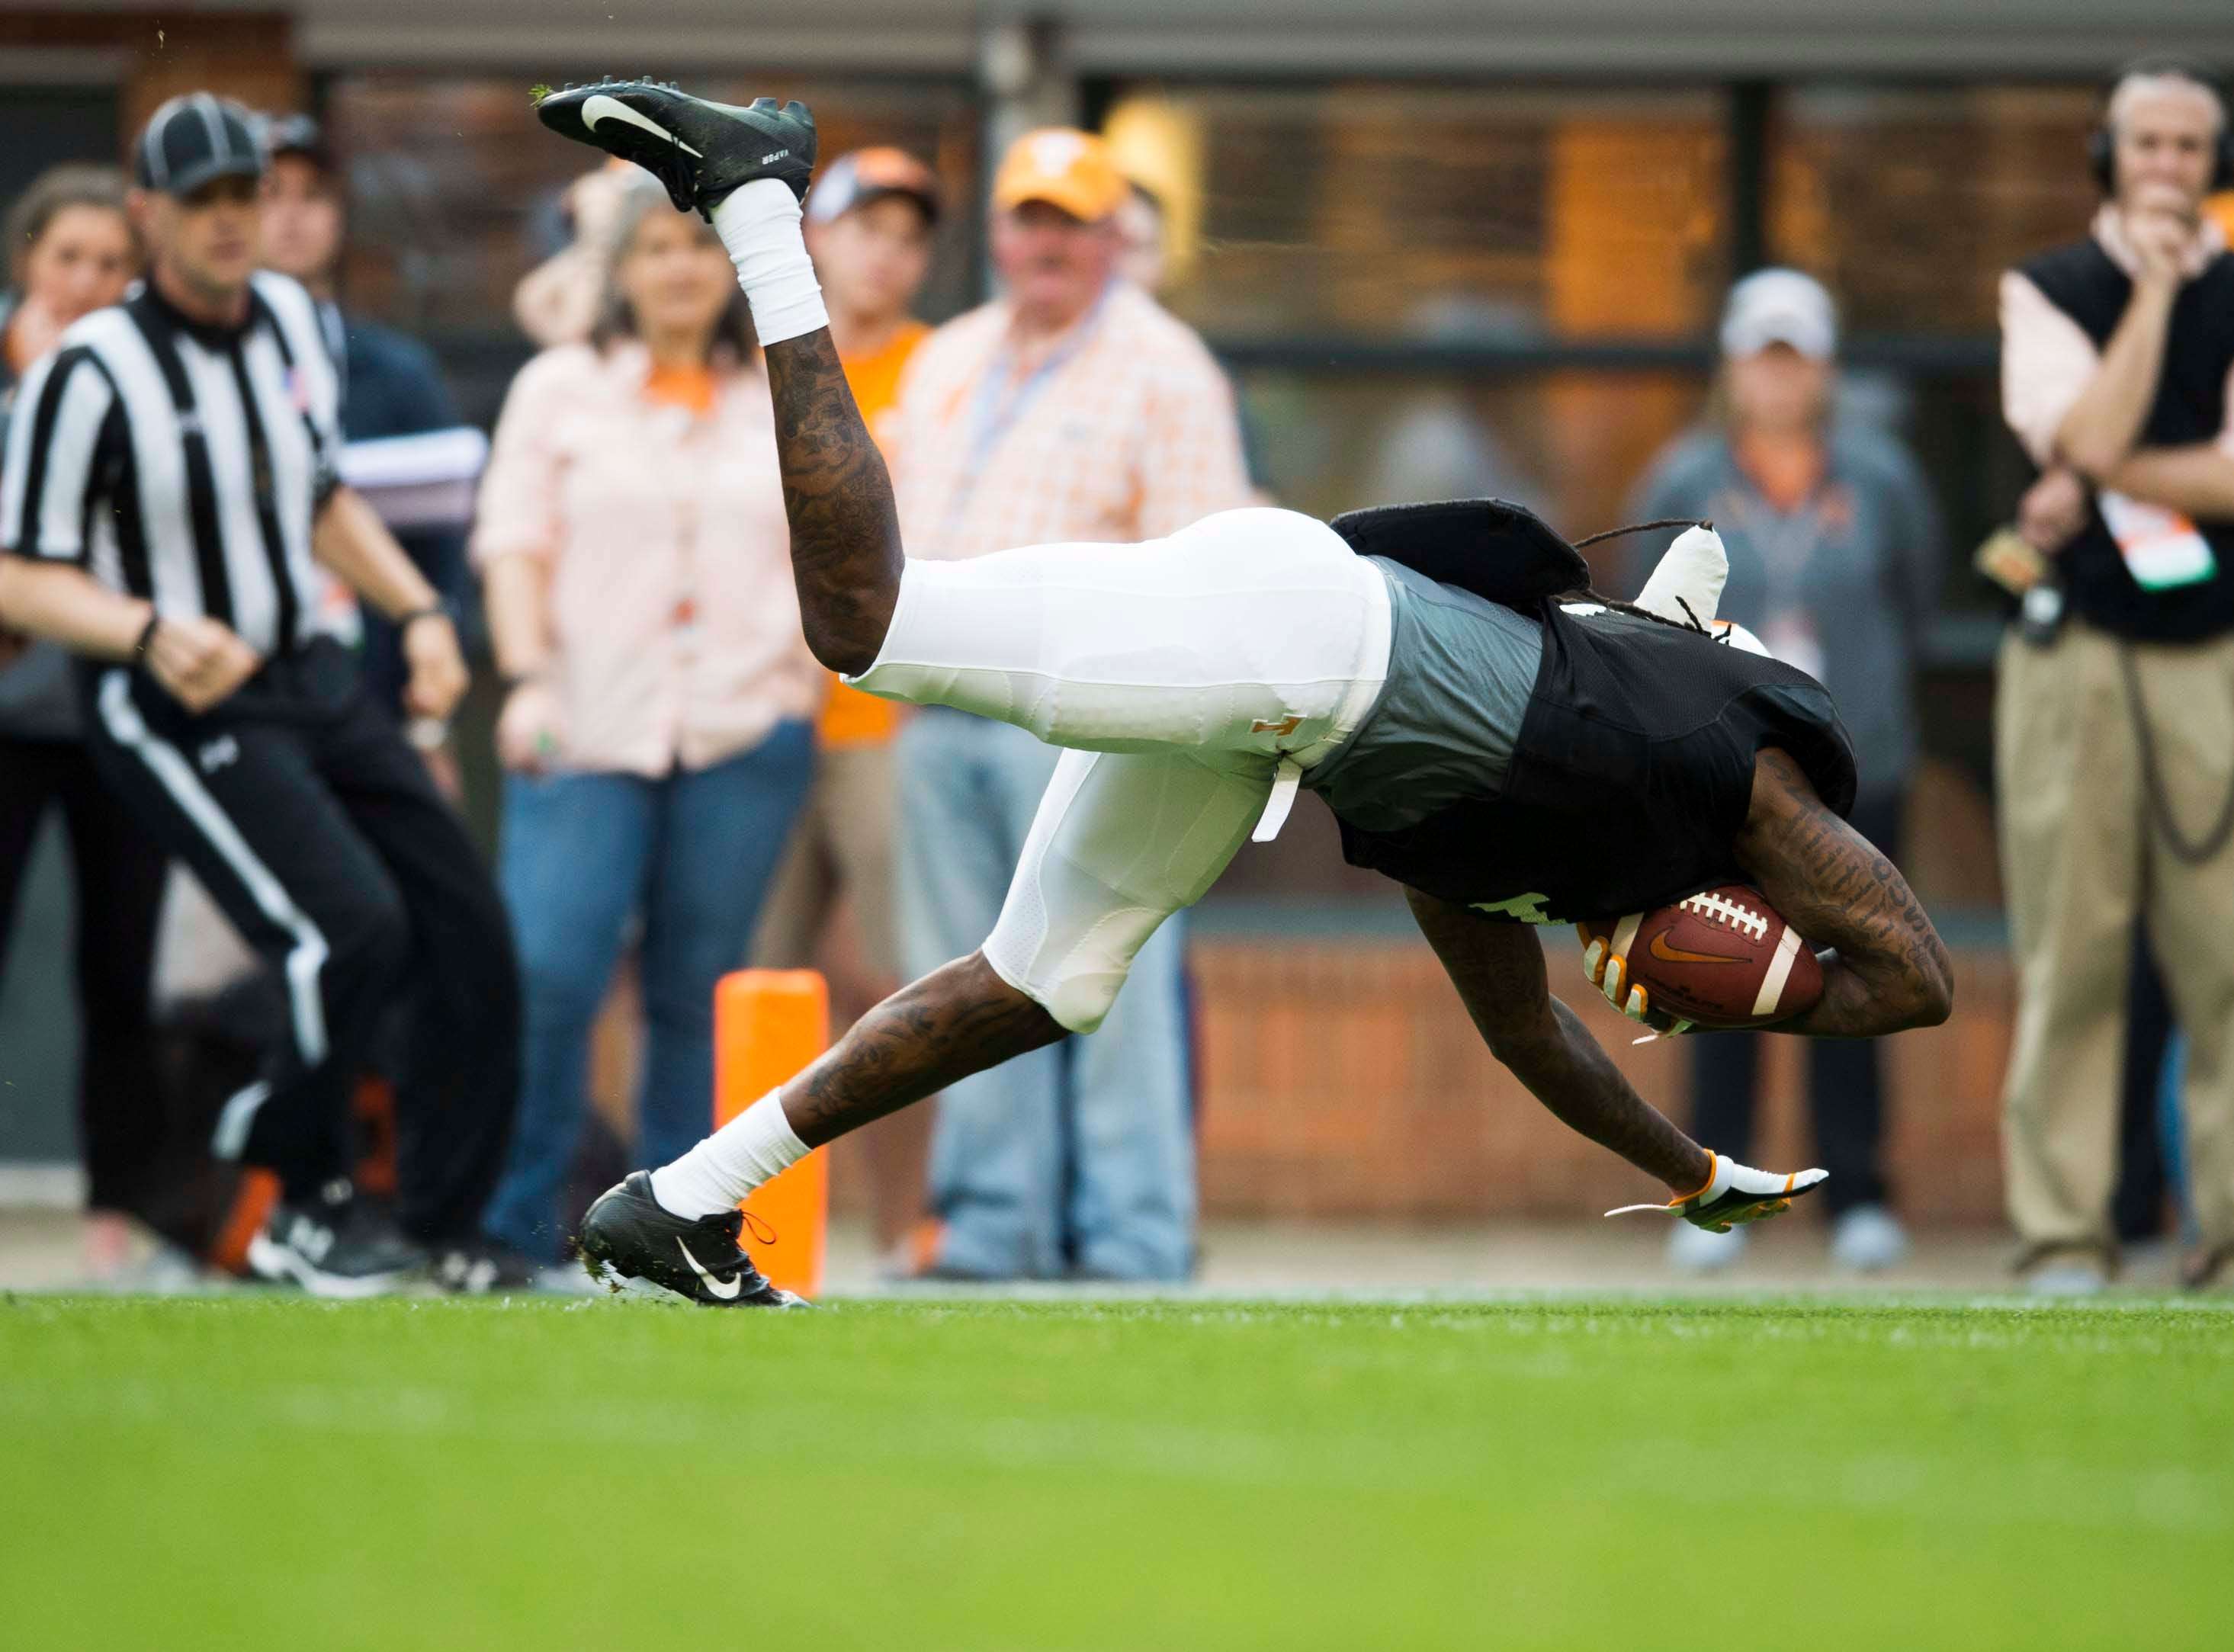 Tennessee wide receiver Marquez Callaway (1) dives into the end zone during the Vols spring game in Neyland Stadium in Knoxville Saturday, April 13, 2019.